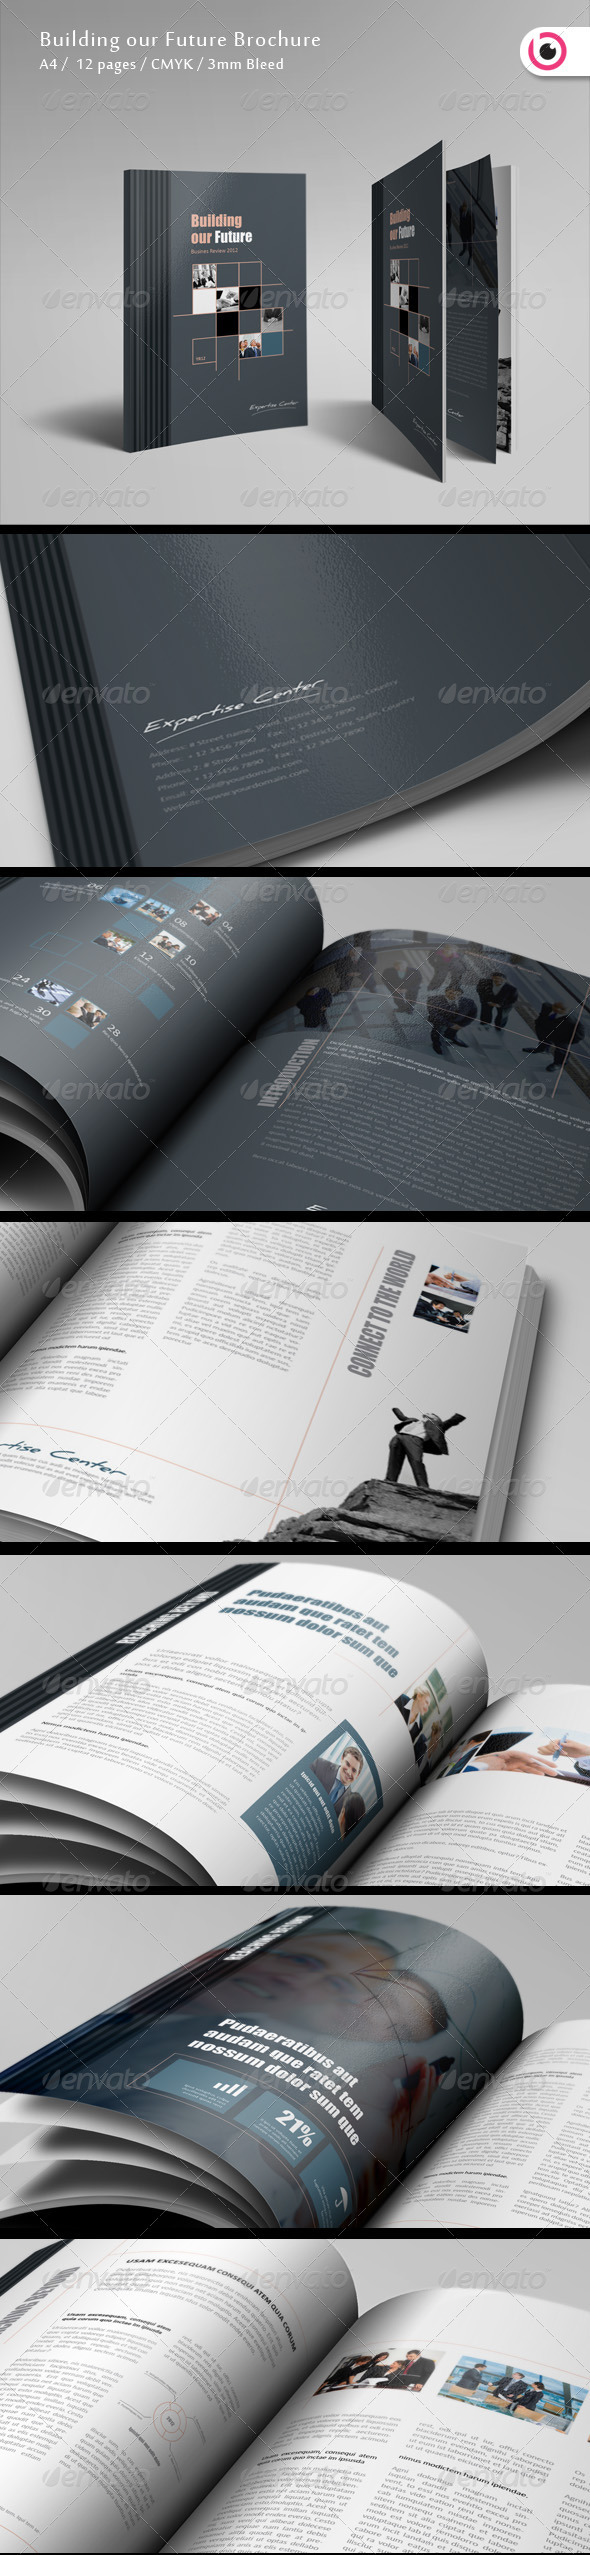 Corporate Brochure - Building Future